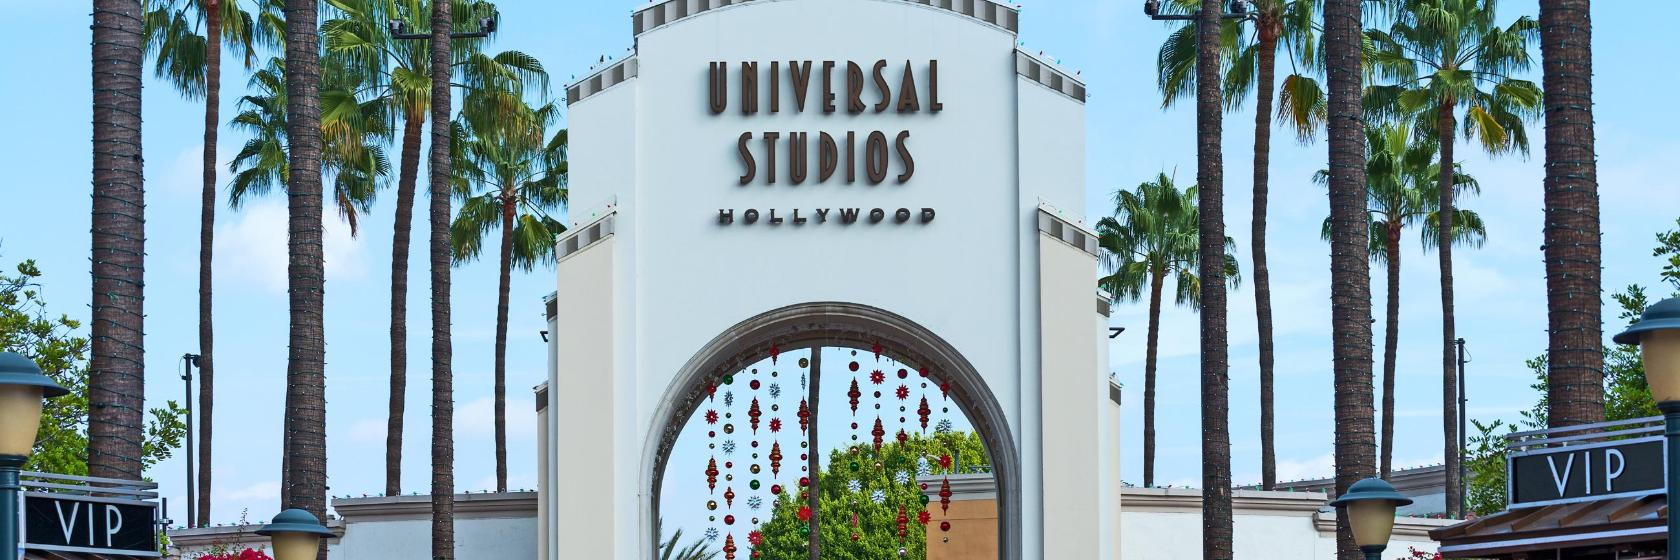 Universal Studios Hollywood Crowd Calendar 2022.The 10 Best Hotels Close To Universal Studios Hollywood In Los Angeles United States